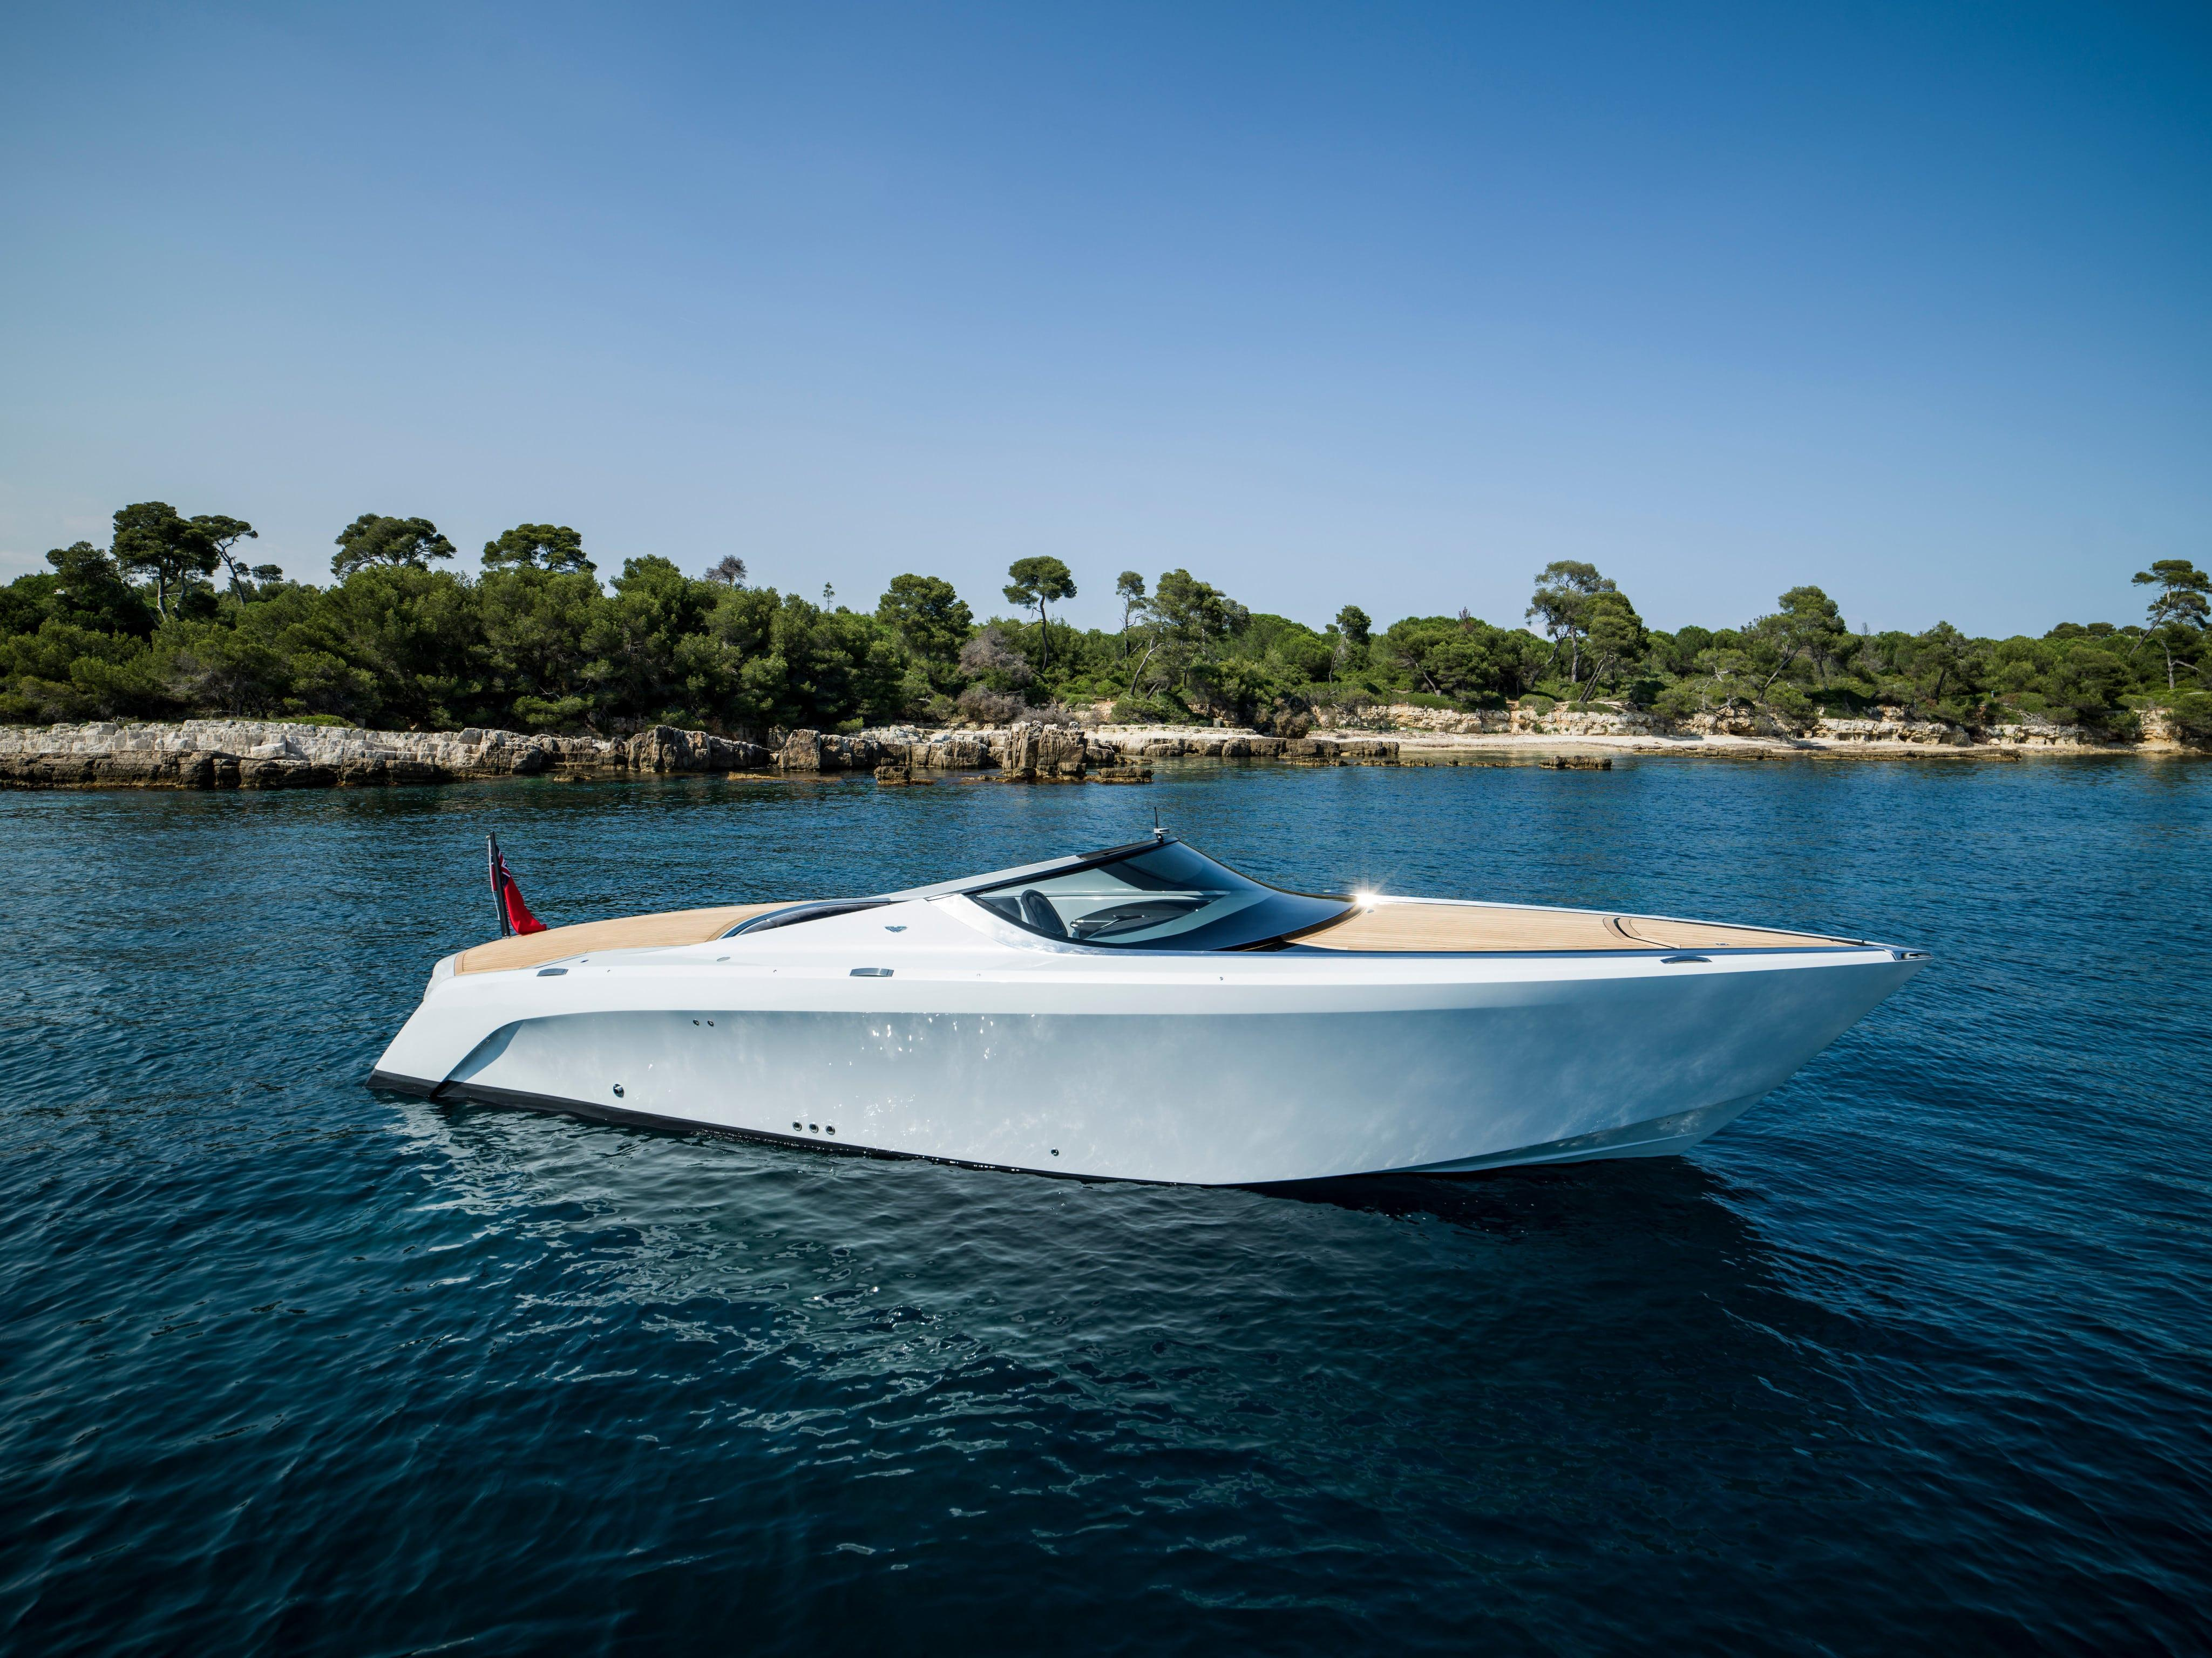 Power Boats For Sale >> Mulder Aston Martin Am37 Power Boat For Sale In United Arab Emirates